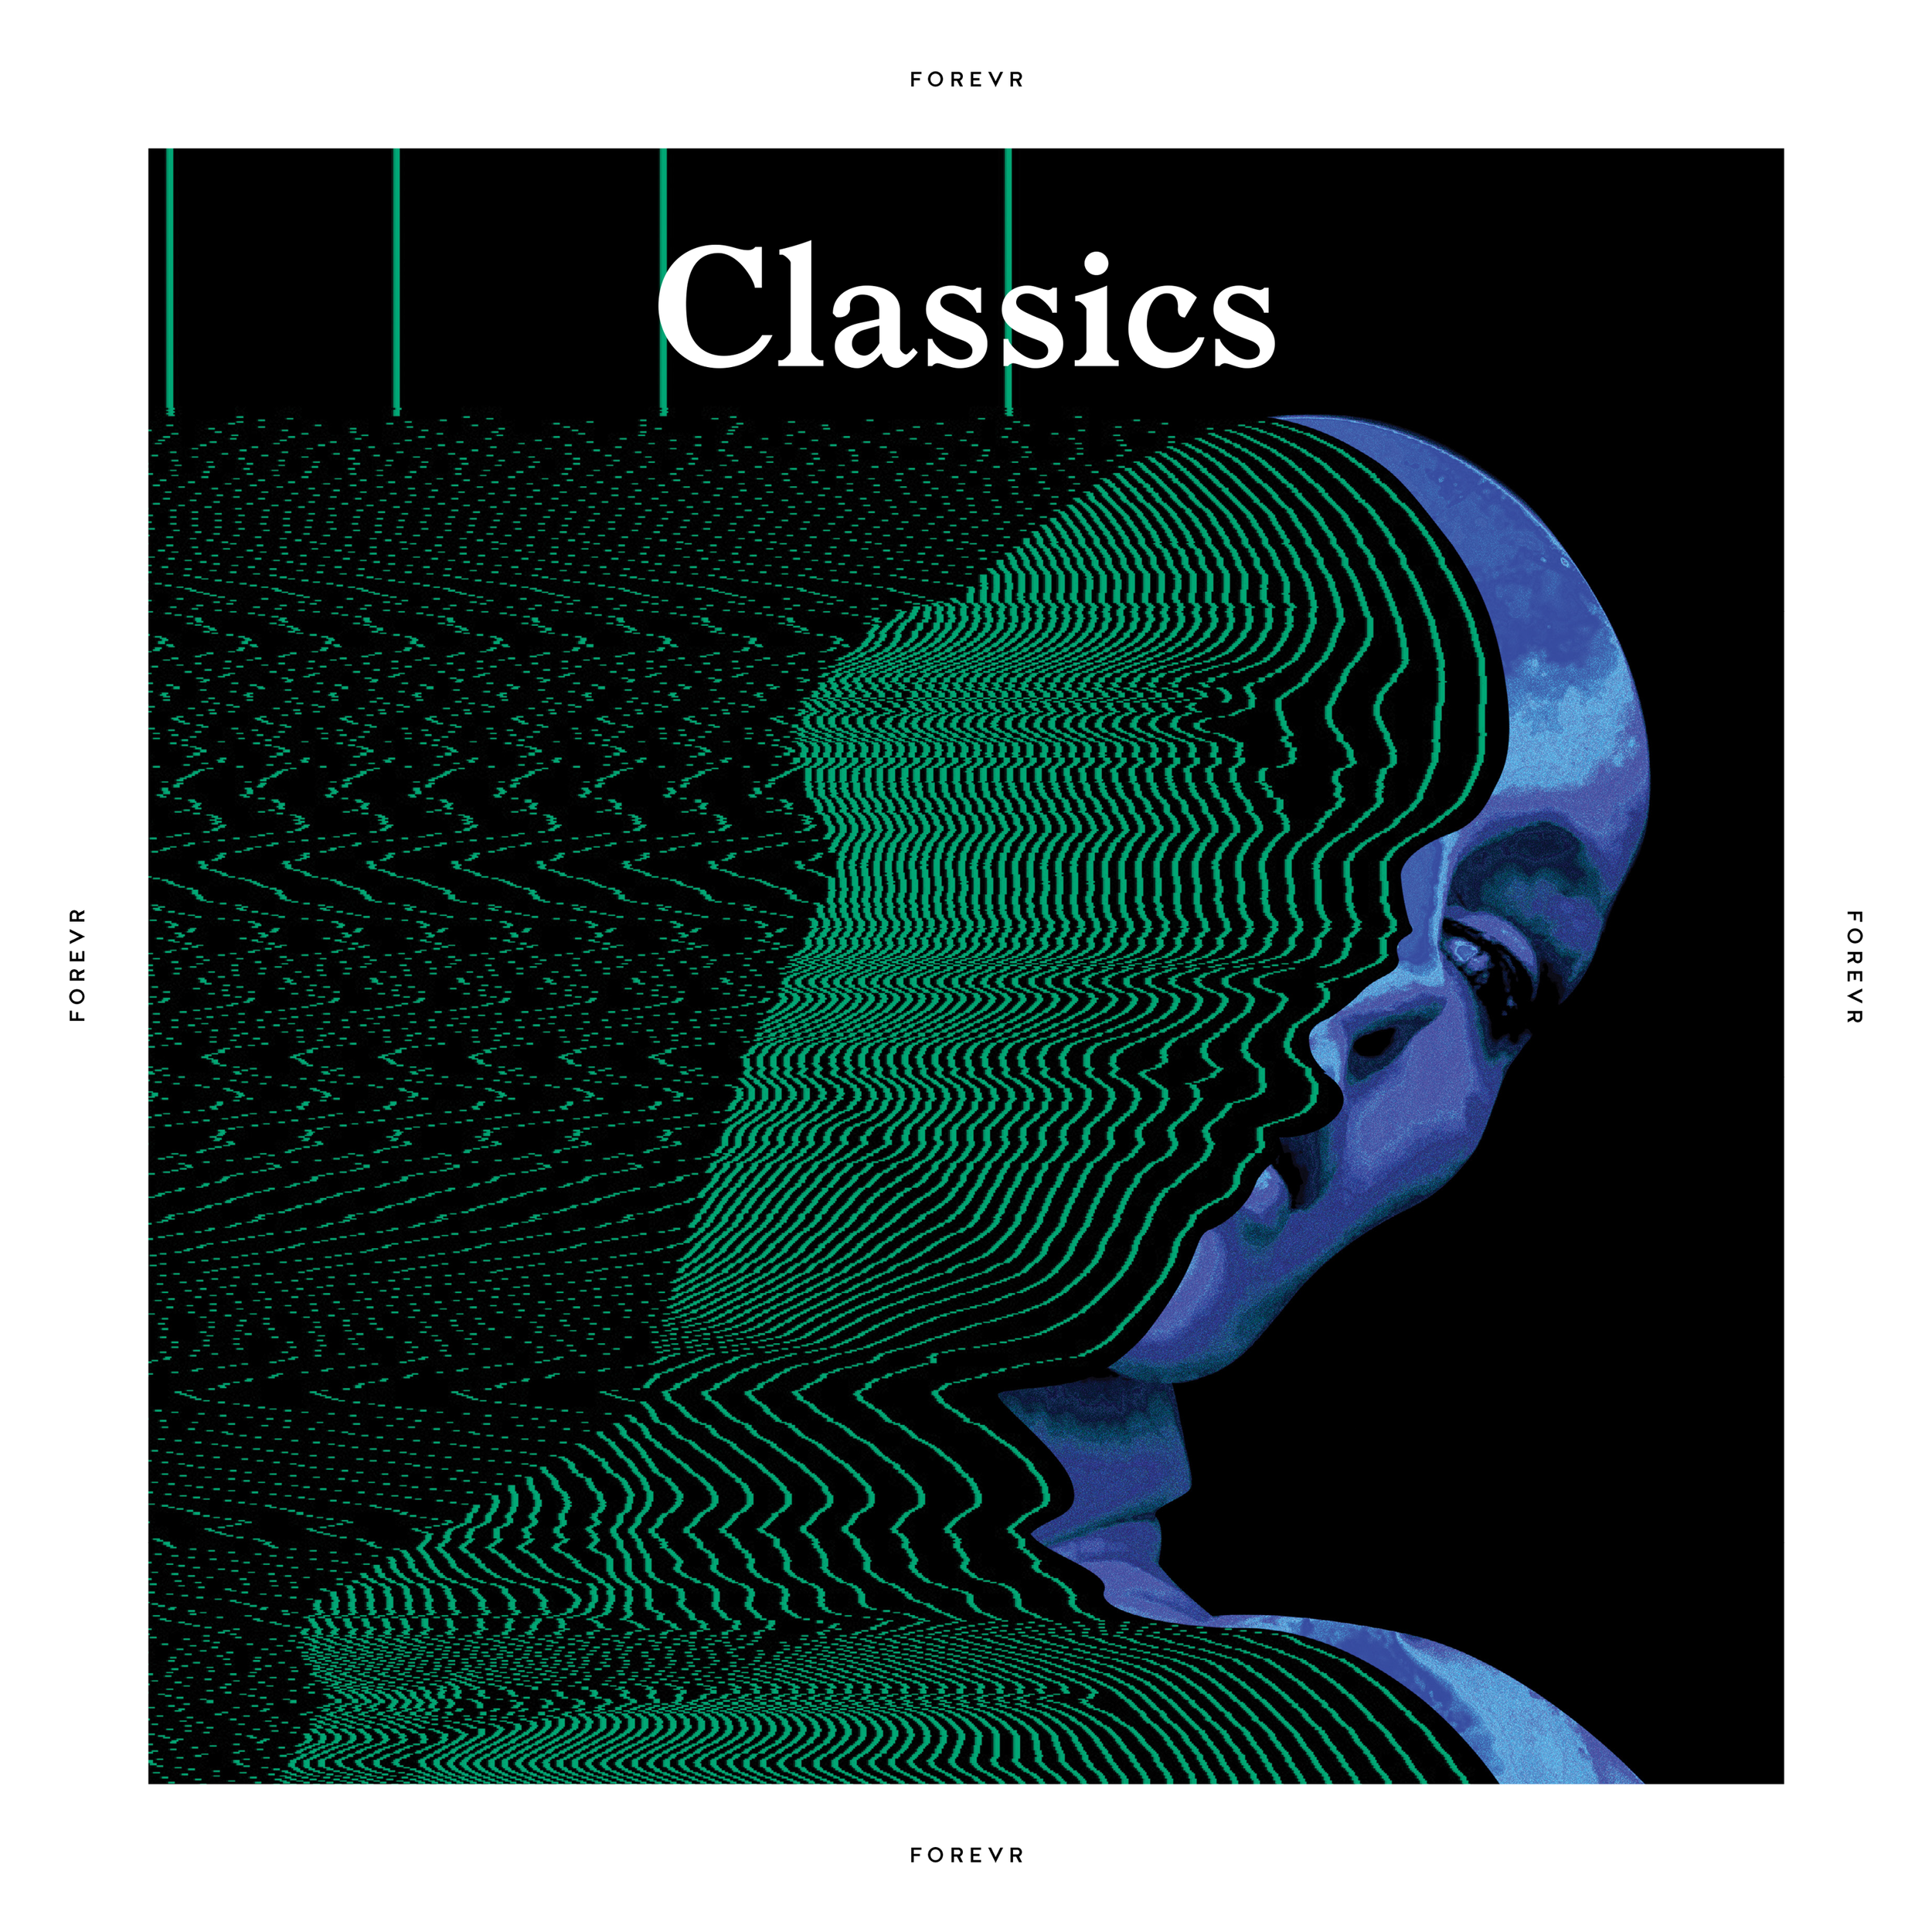 forevr-classics-3000x3000.png